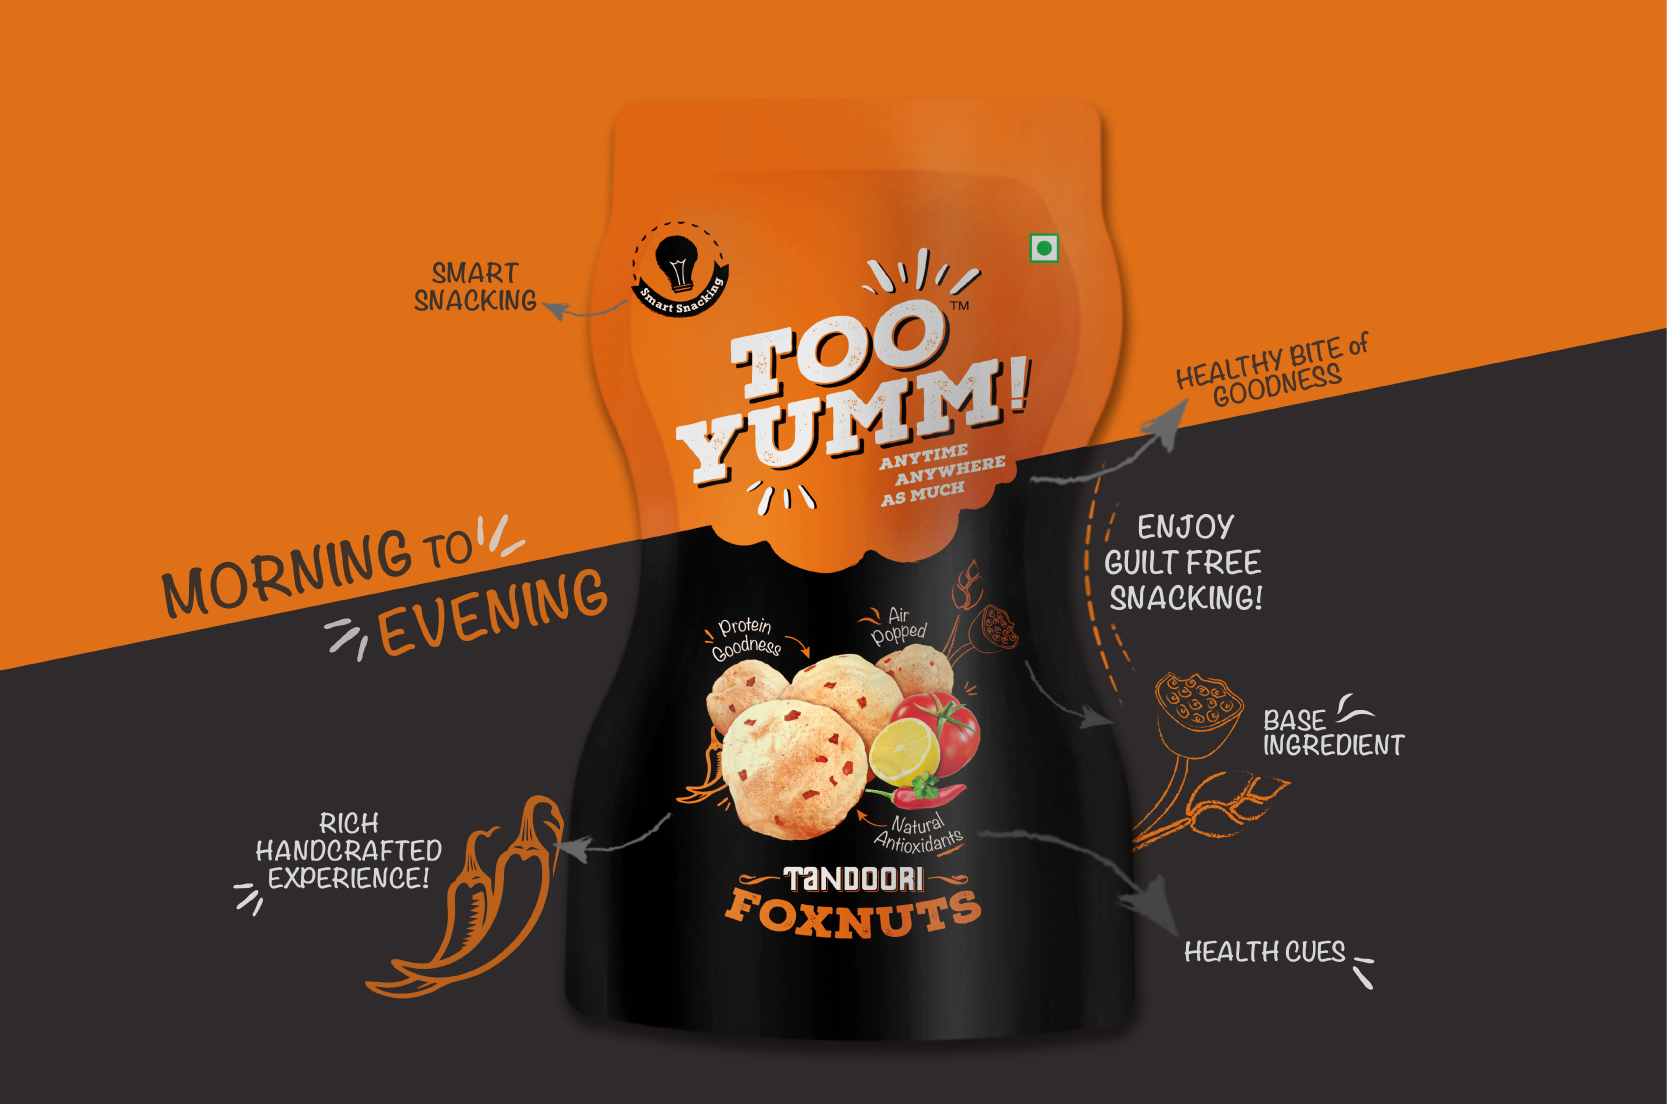 Too Yumm_Packaging Design_Elephant Design 2.jpg